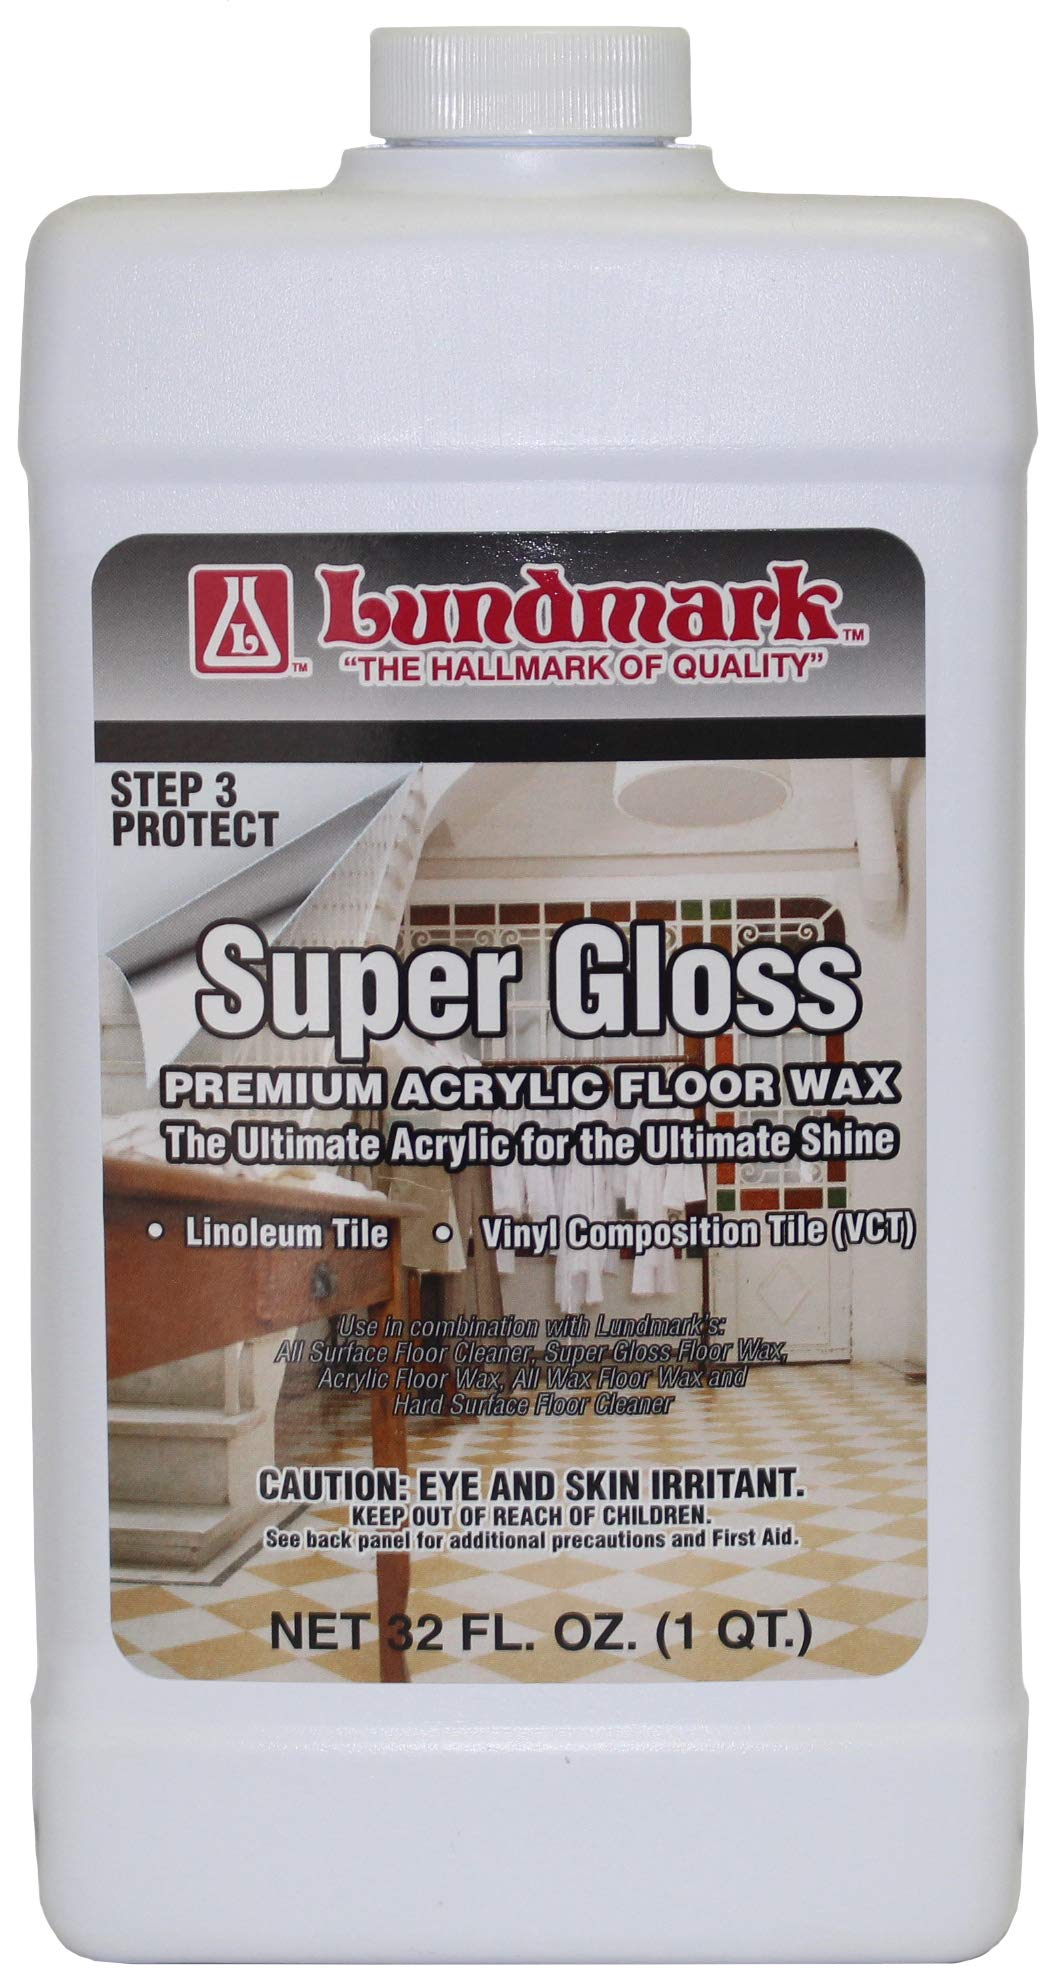 Lundmark Super Gloss Acrylic Extra Heavy Duty Hard Finish